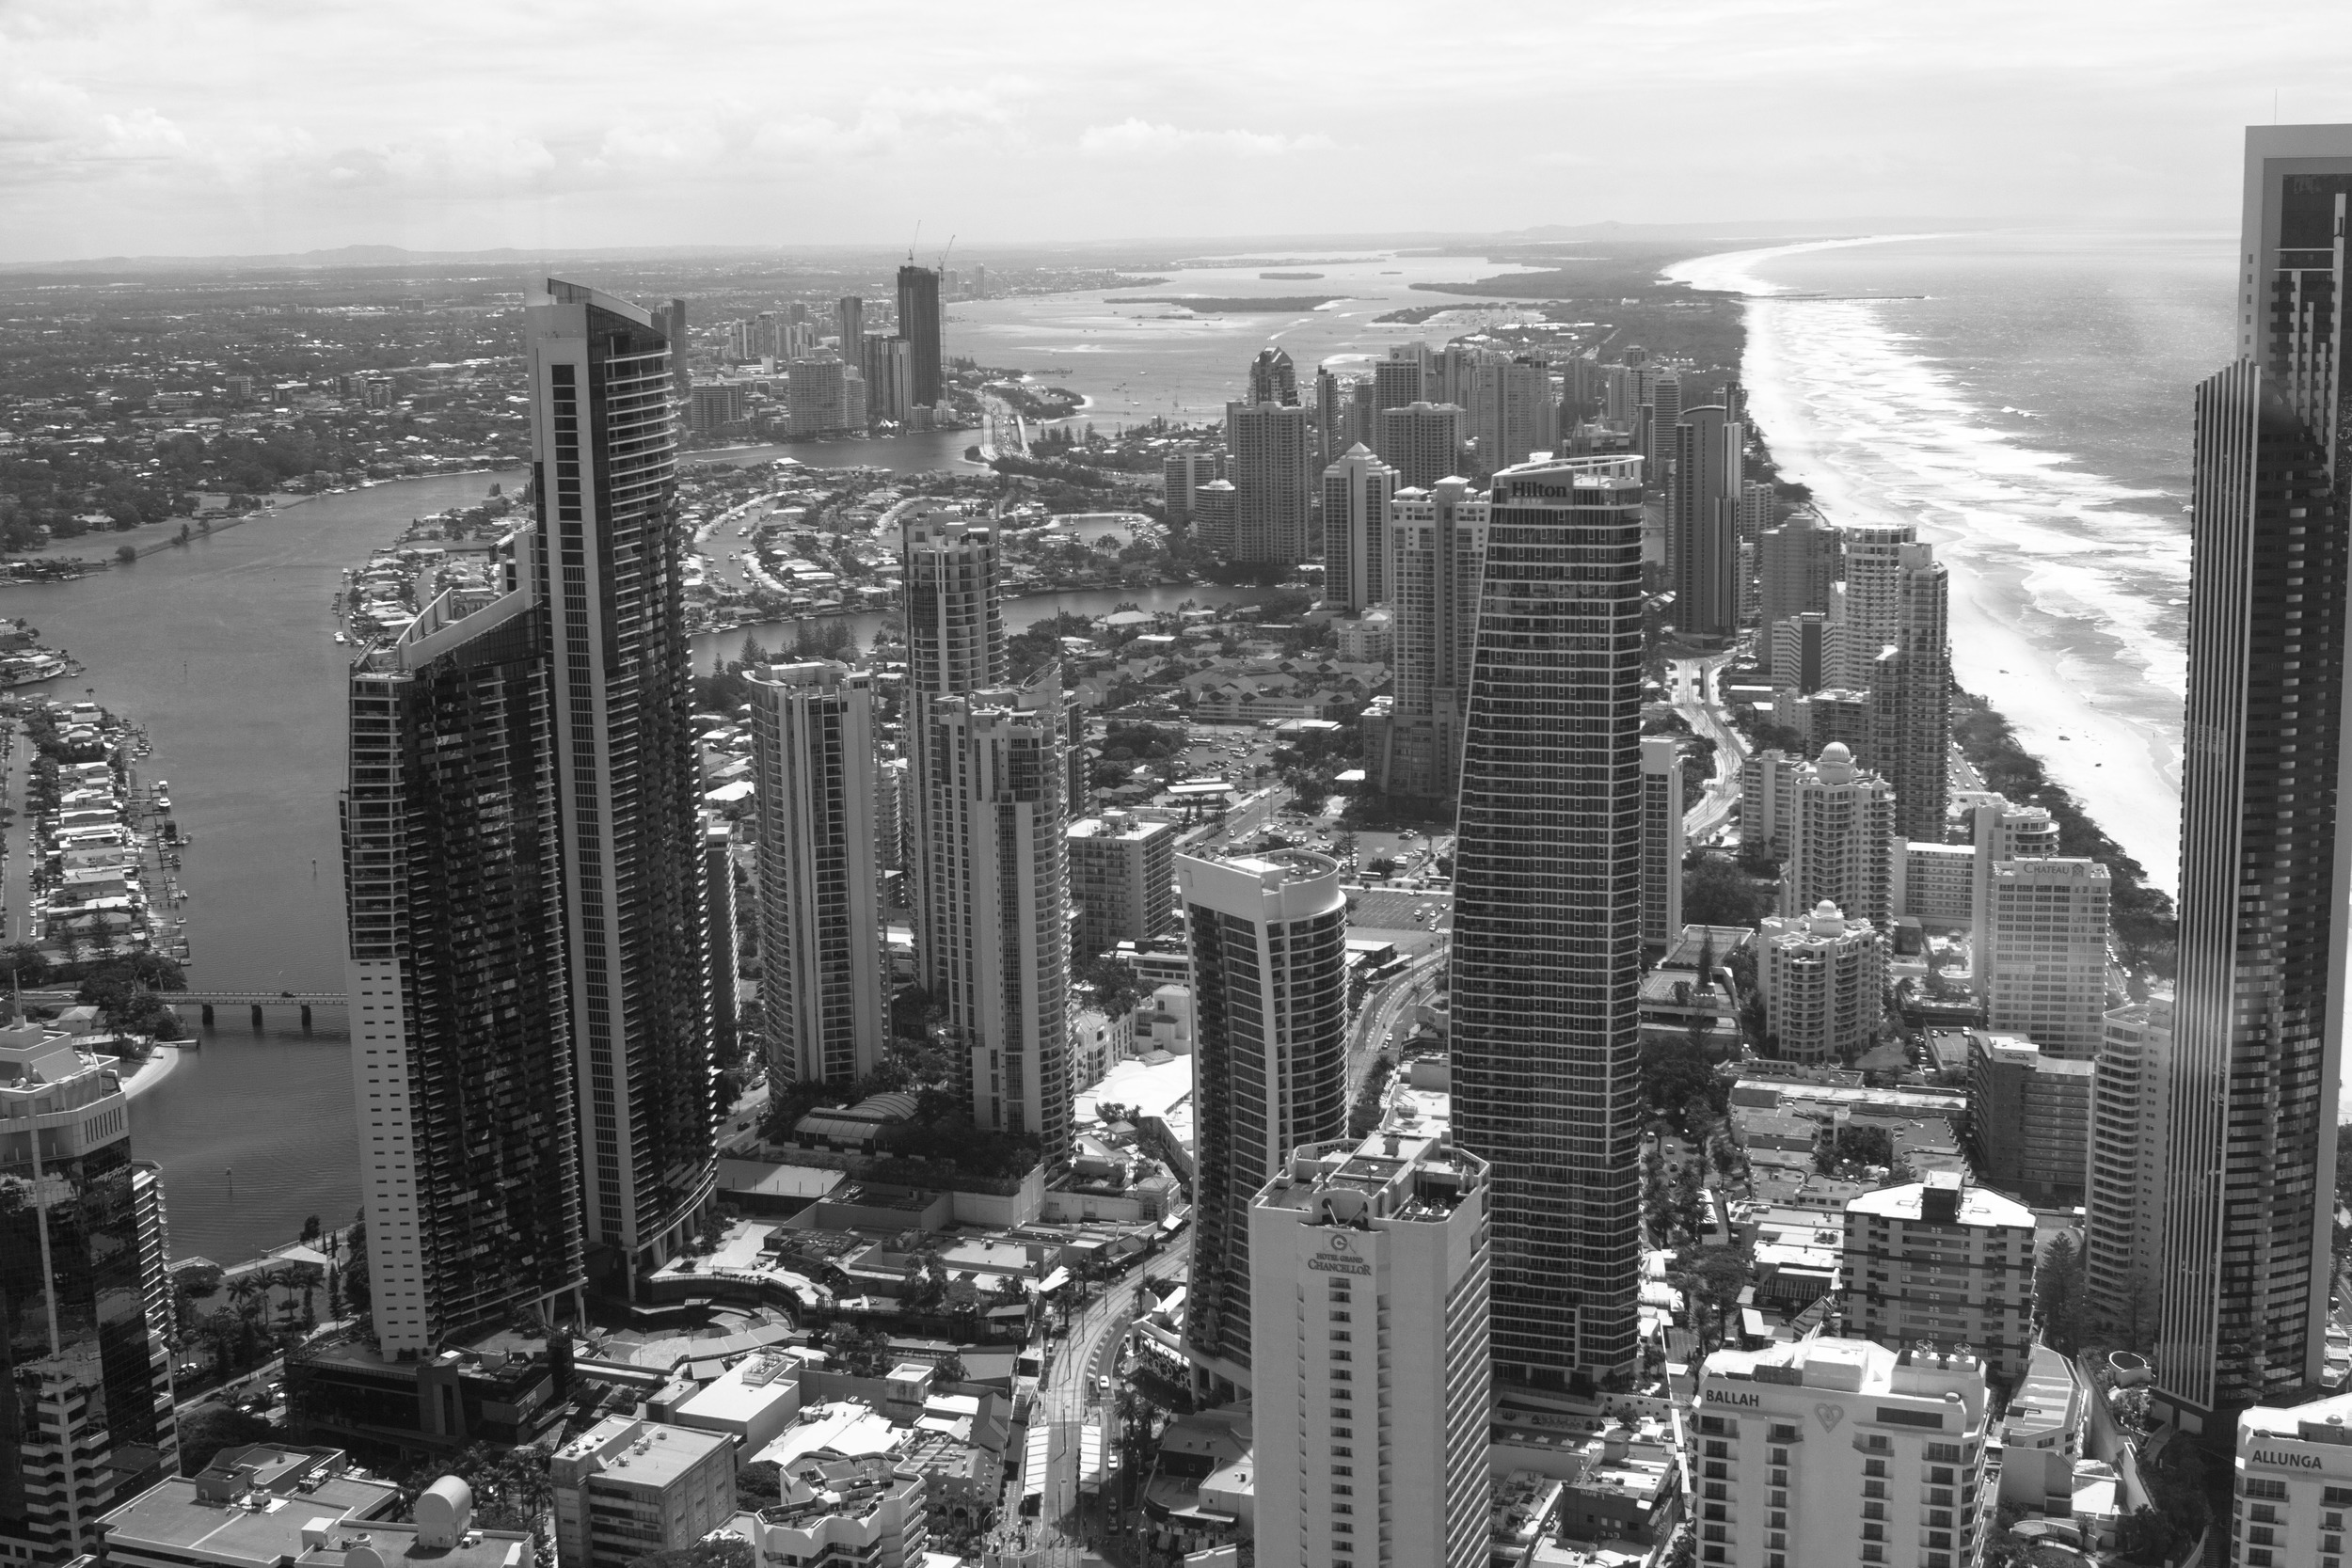 View from Skypoint Observation Deck